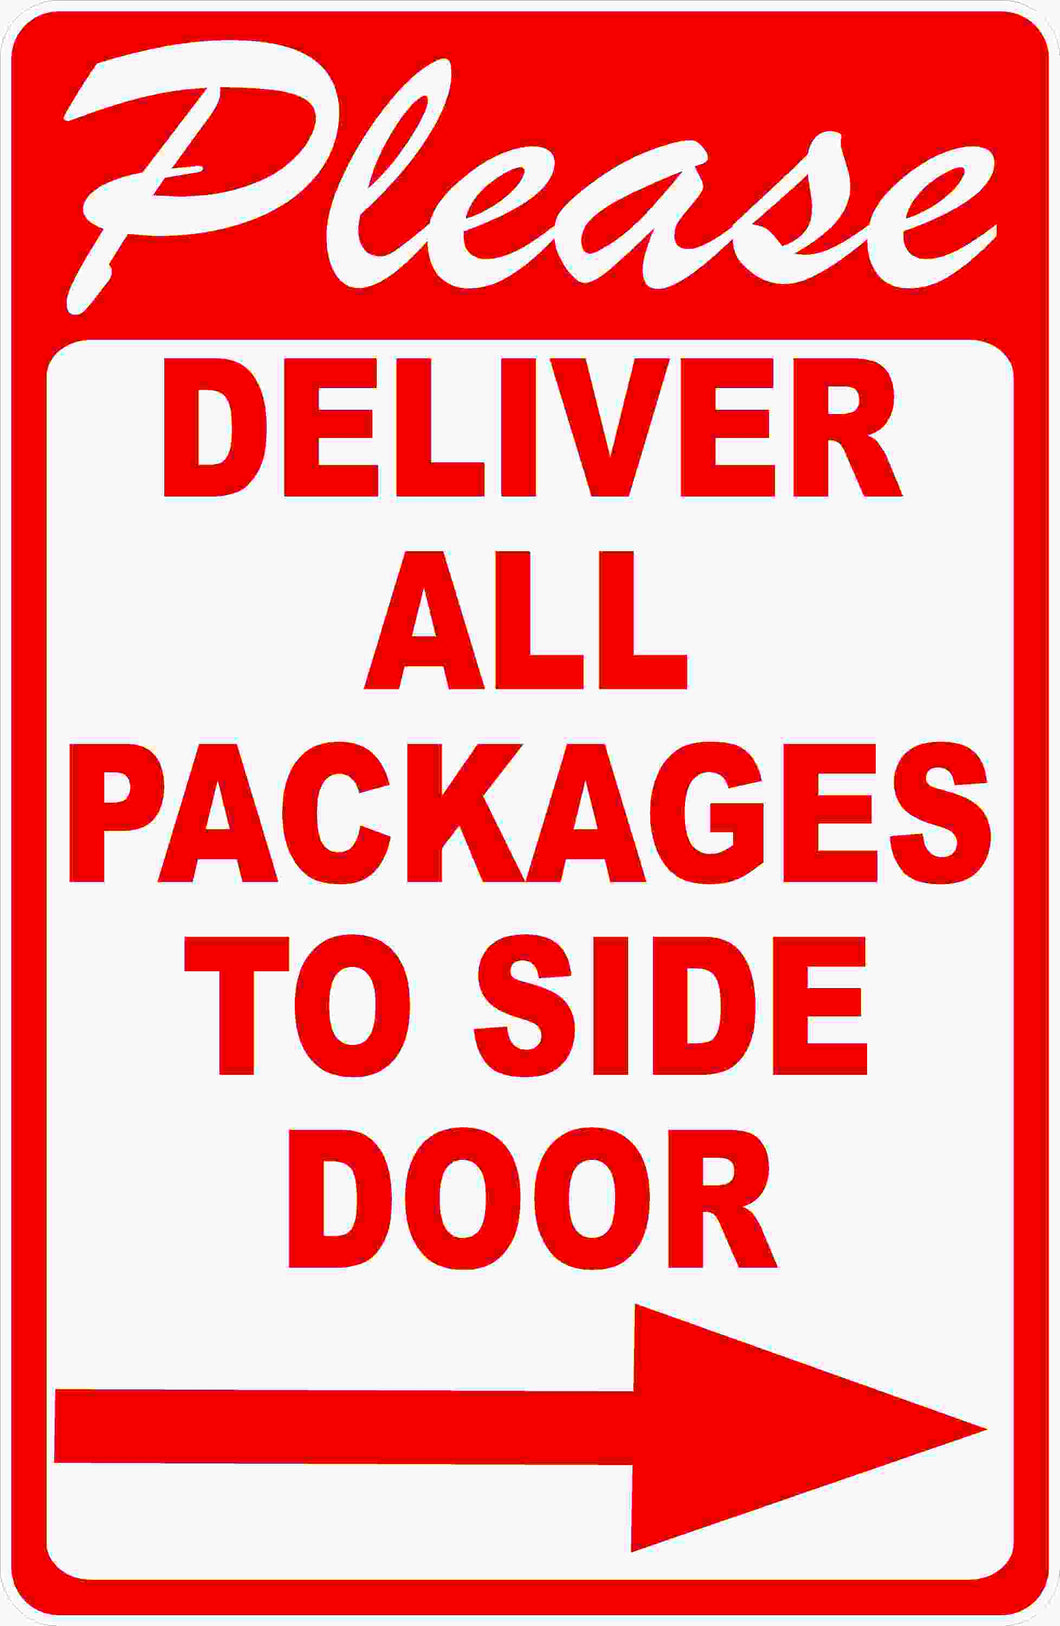 Please Deliver All Packages To Side Door Sign with Arrow